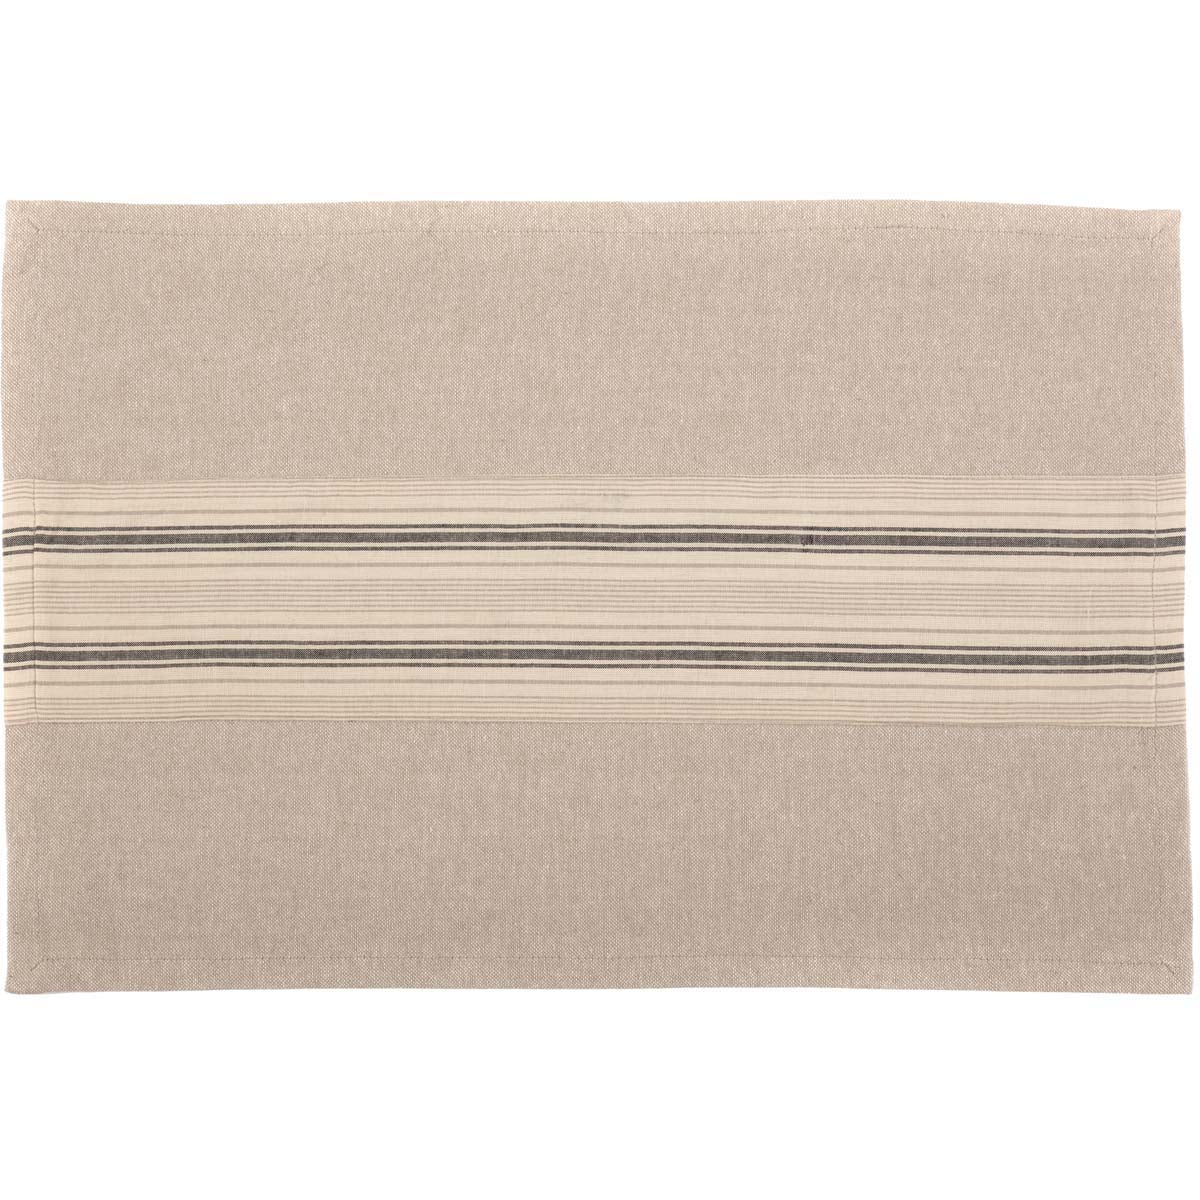 Sawyer Mill Charcoal Placemat Set of 6 12x18 - Woodrol